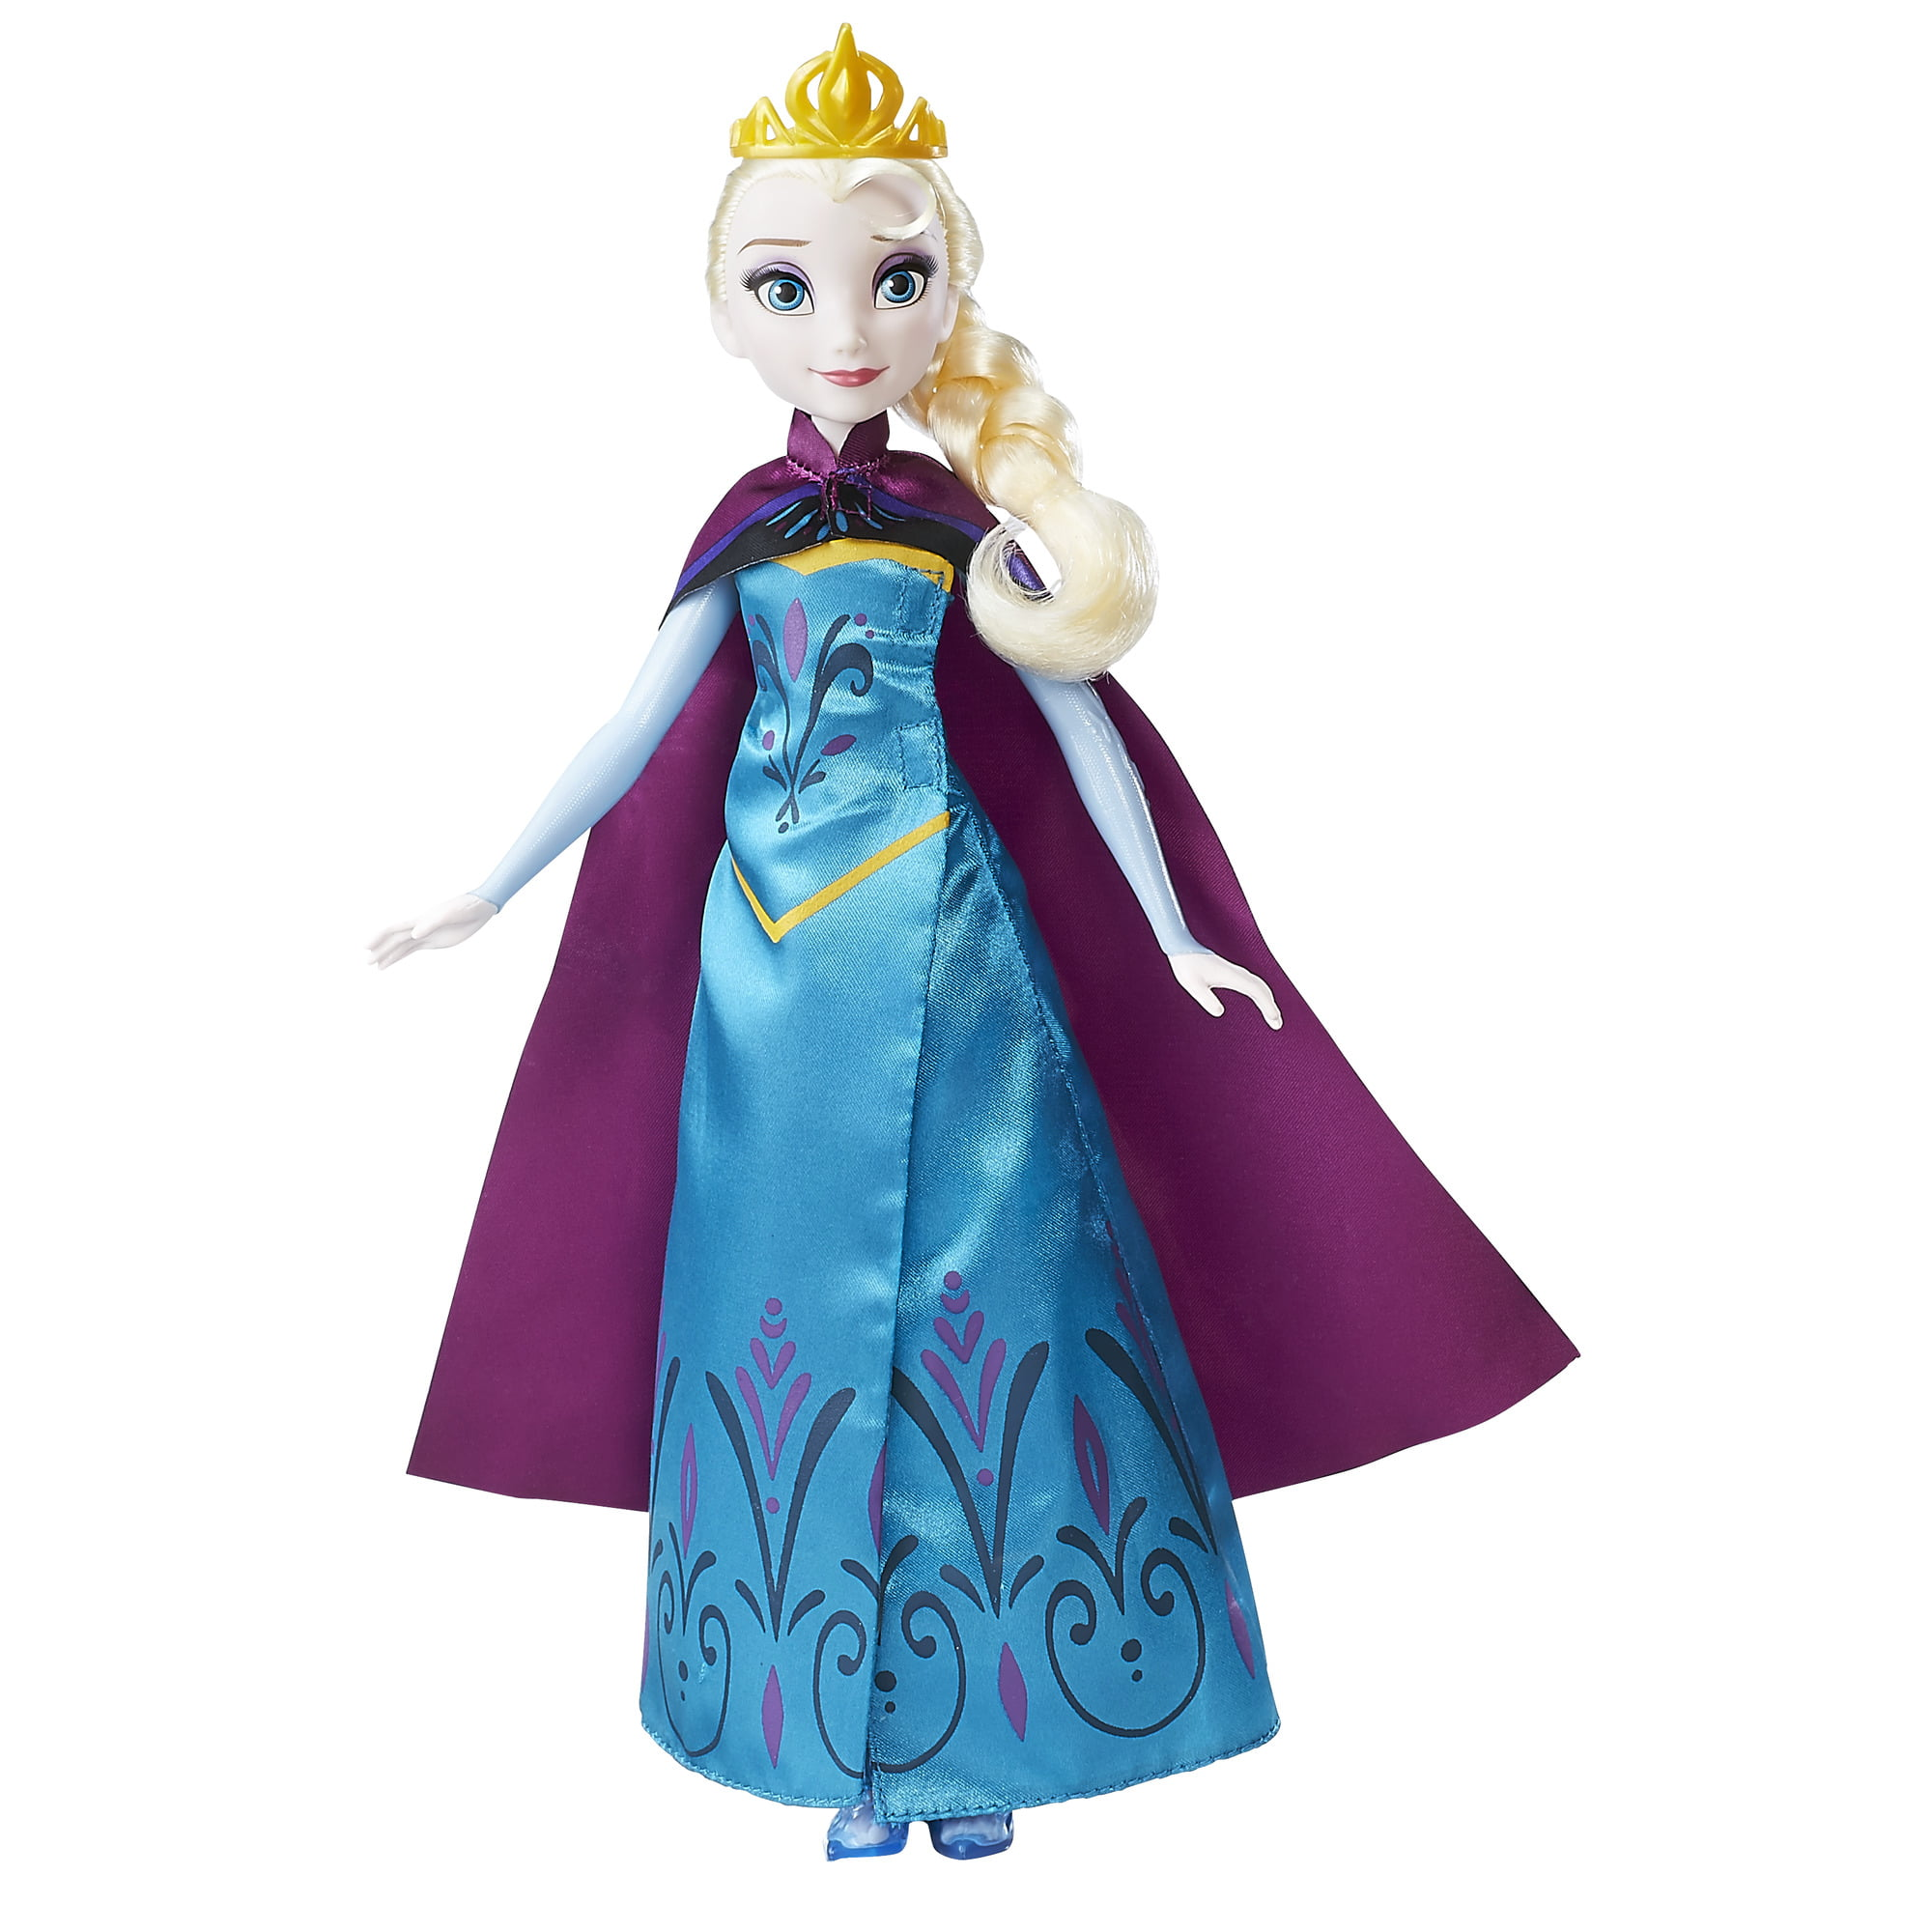 Disney Frozen Royal Reveal Elsa Doll by Hasbro Inc